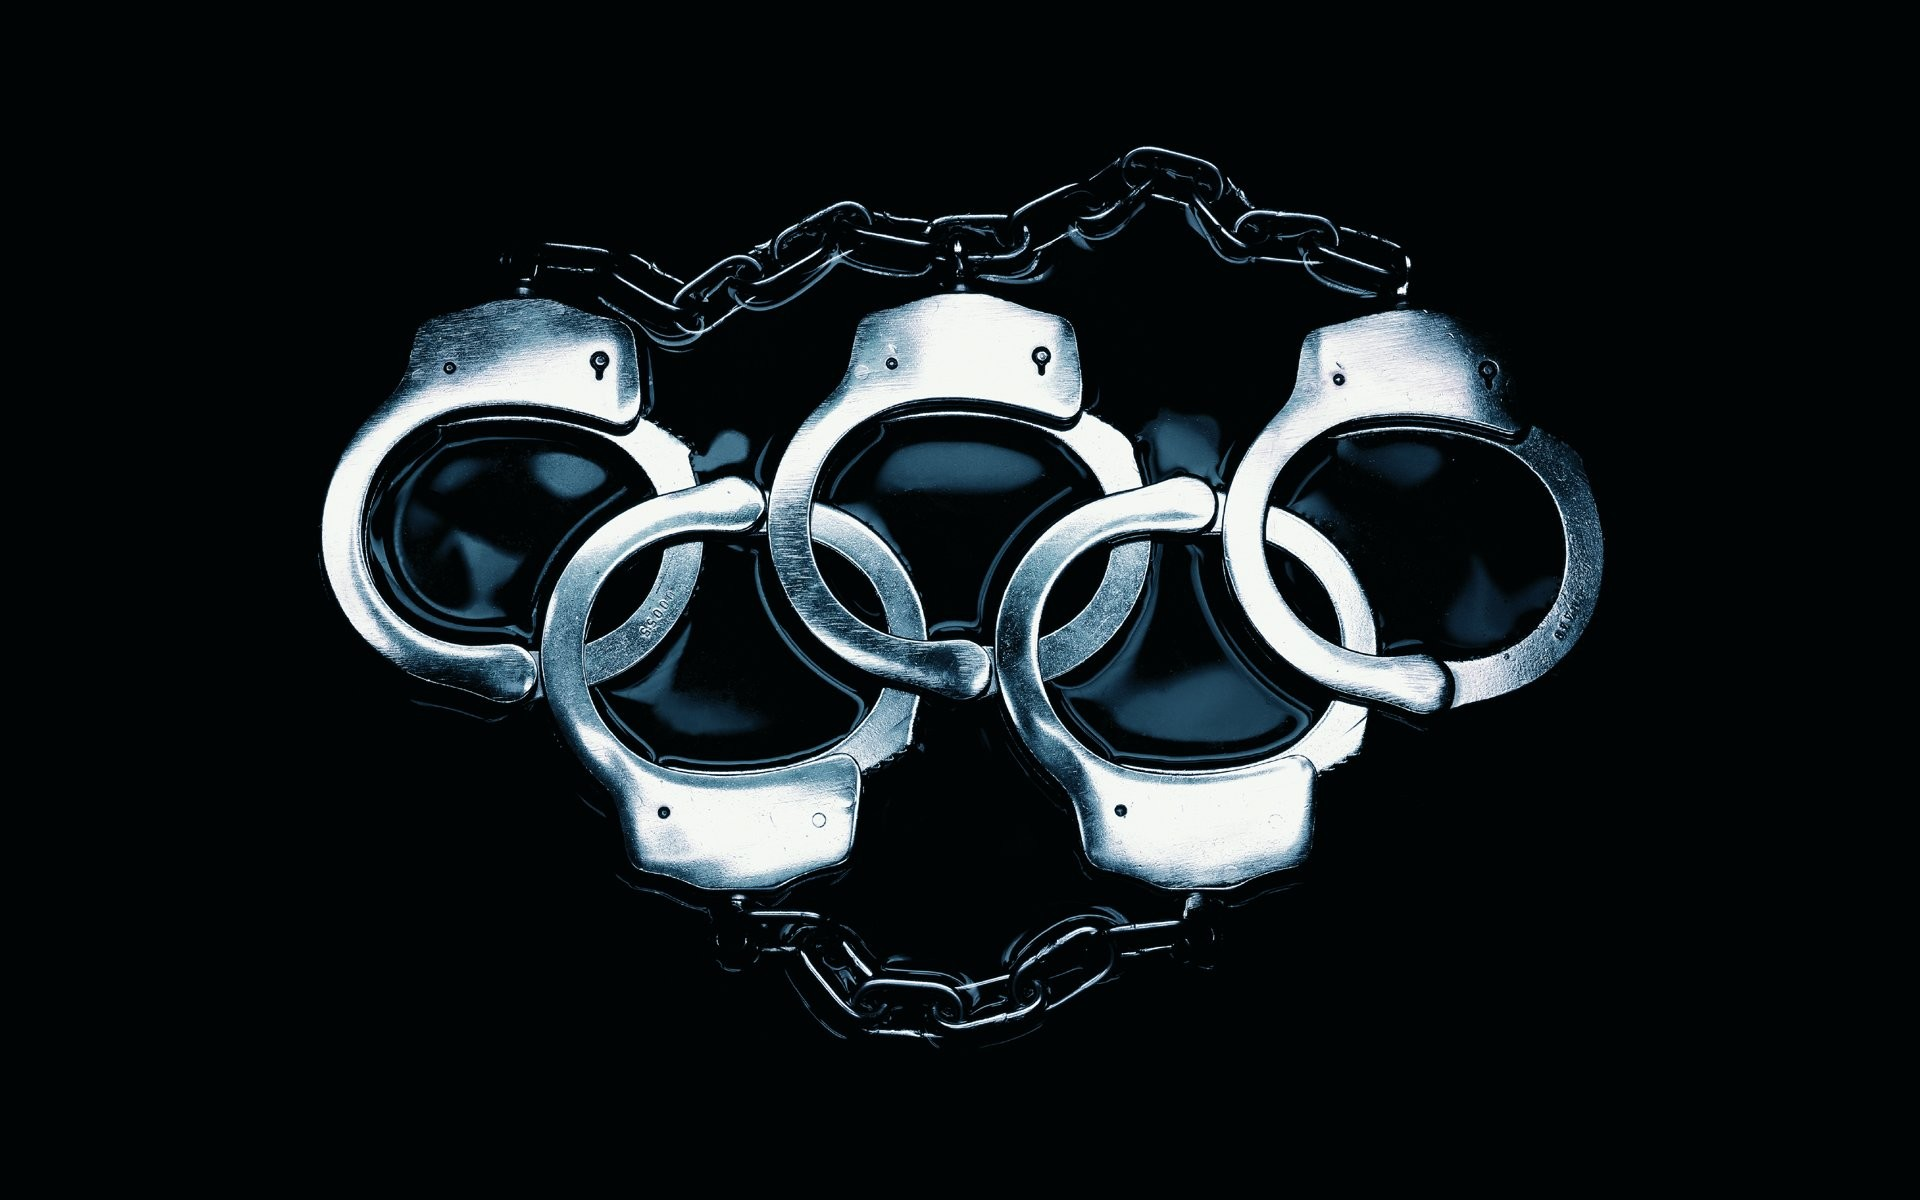 Wallpaper police, olympic games, metal, handcuff, Police .